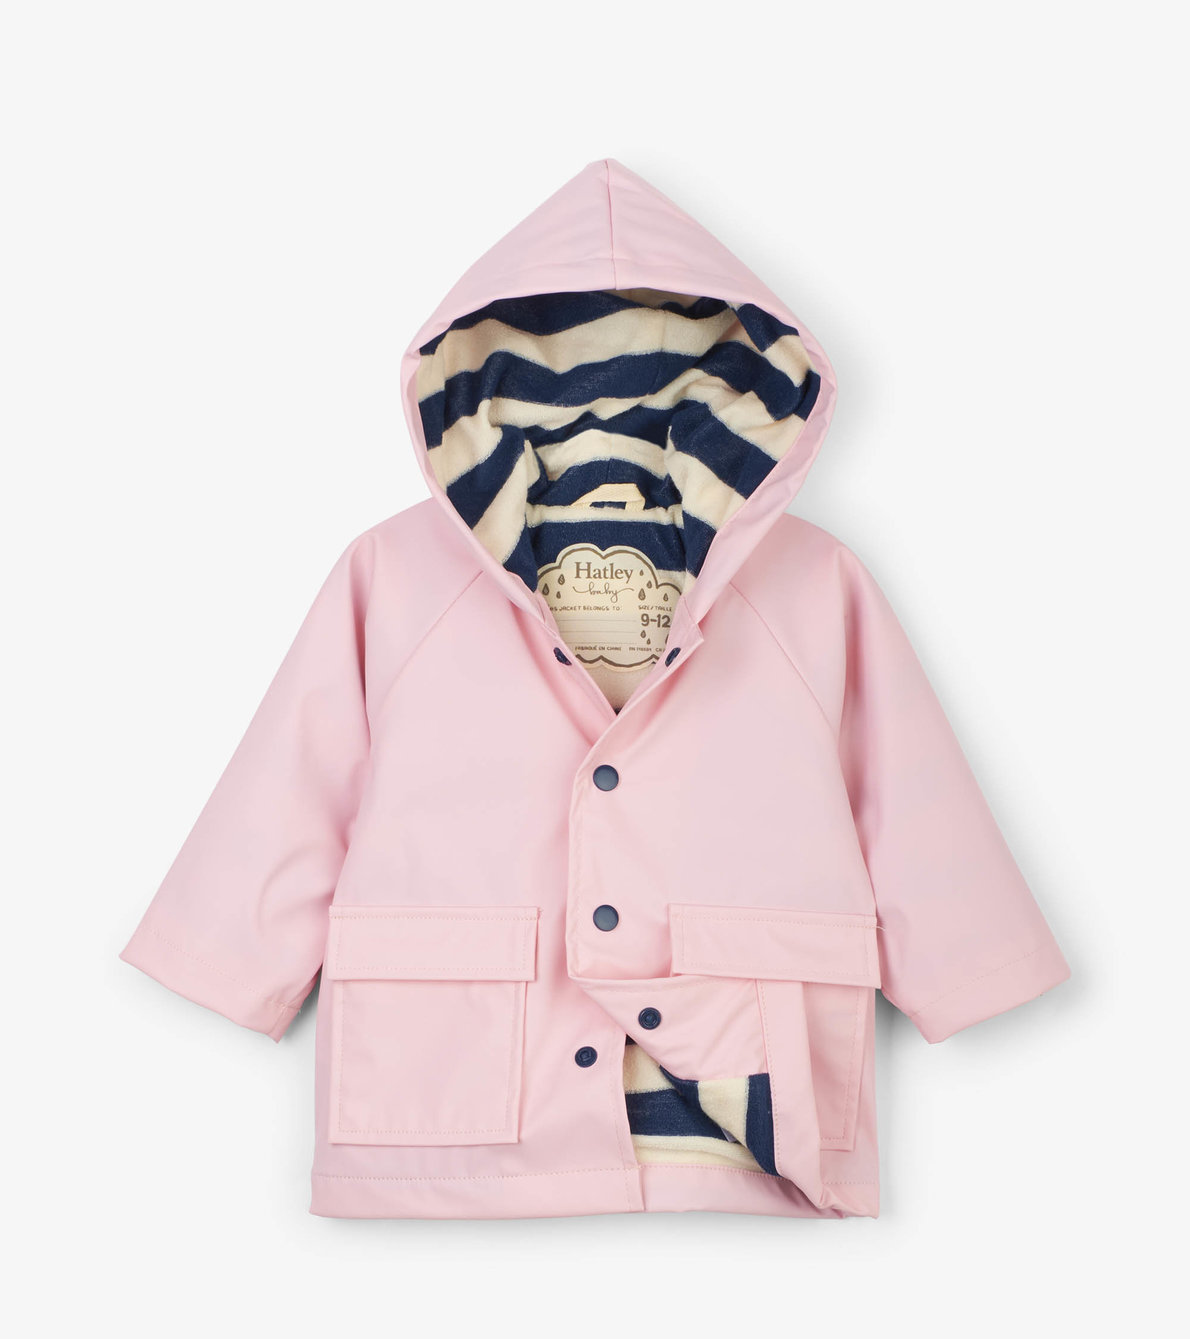 View larger image of Pink Baby Raincoat